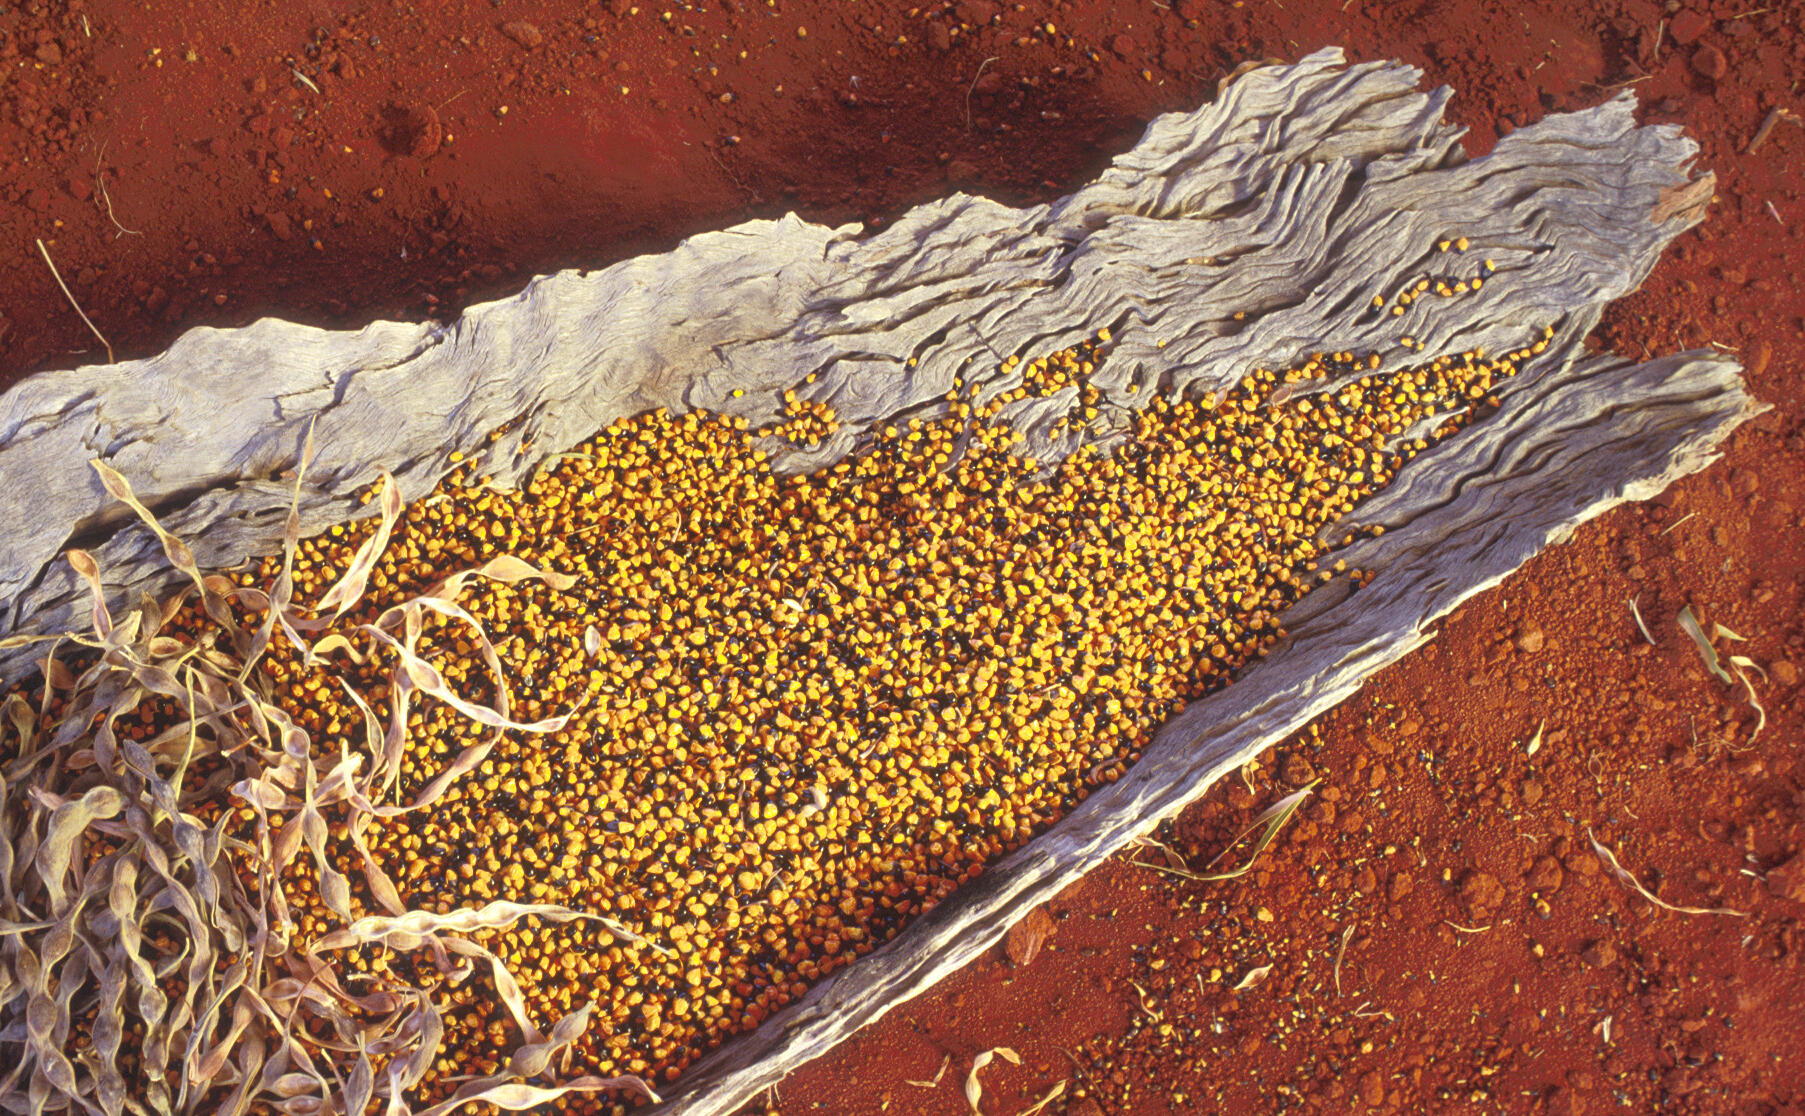 bright yellow seed and pale brown pods of Acacia coriacea or inland acacia situated on a piece of driftwood laying on bright red soil